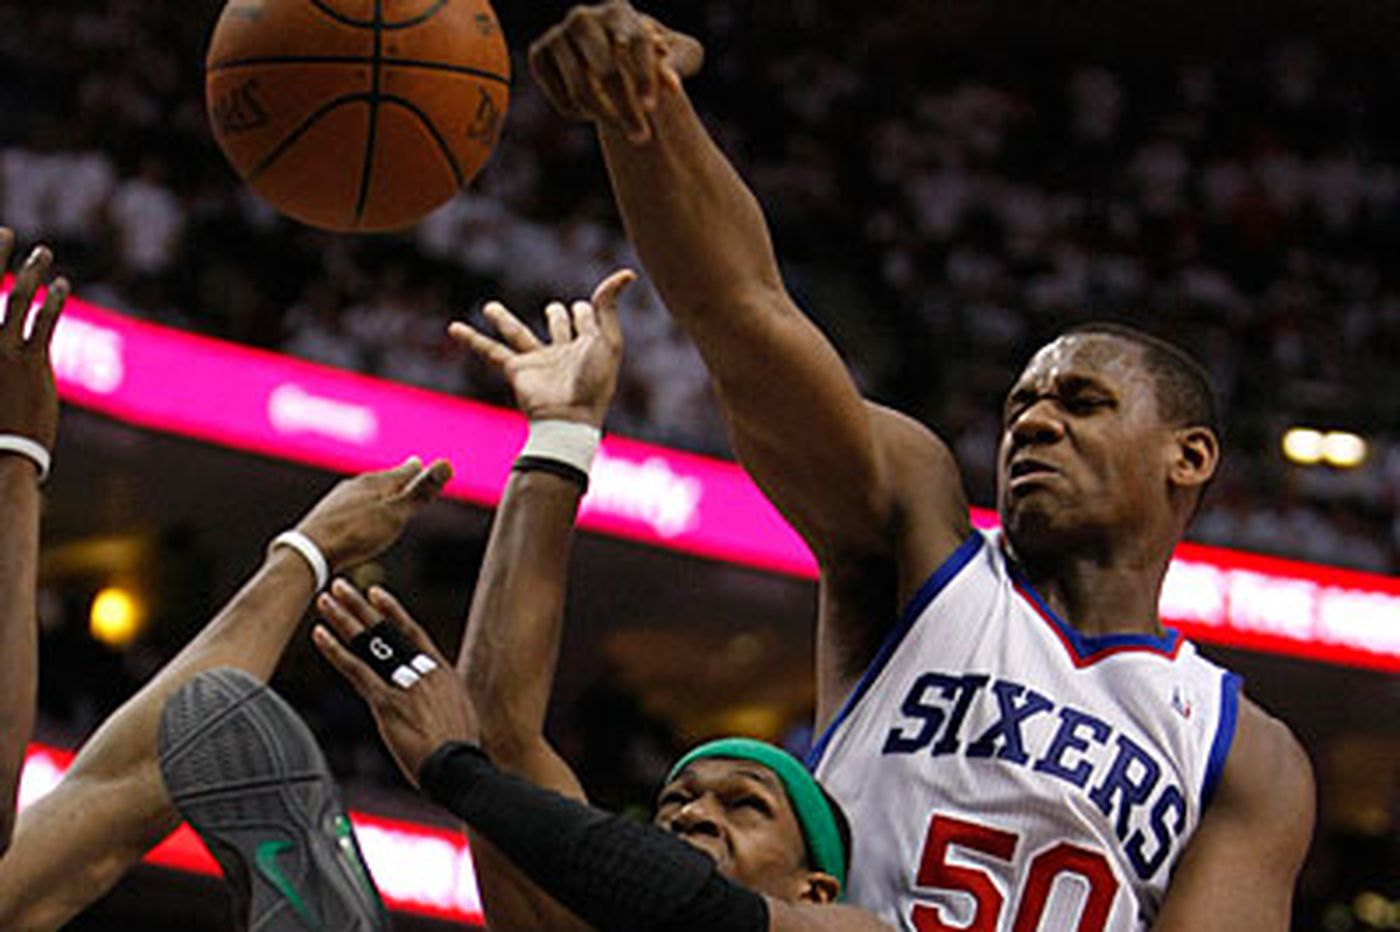 Sources: Sixers reach deal with forward Lavoy Allen